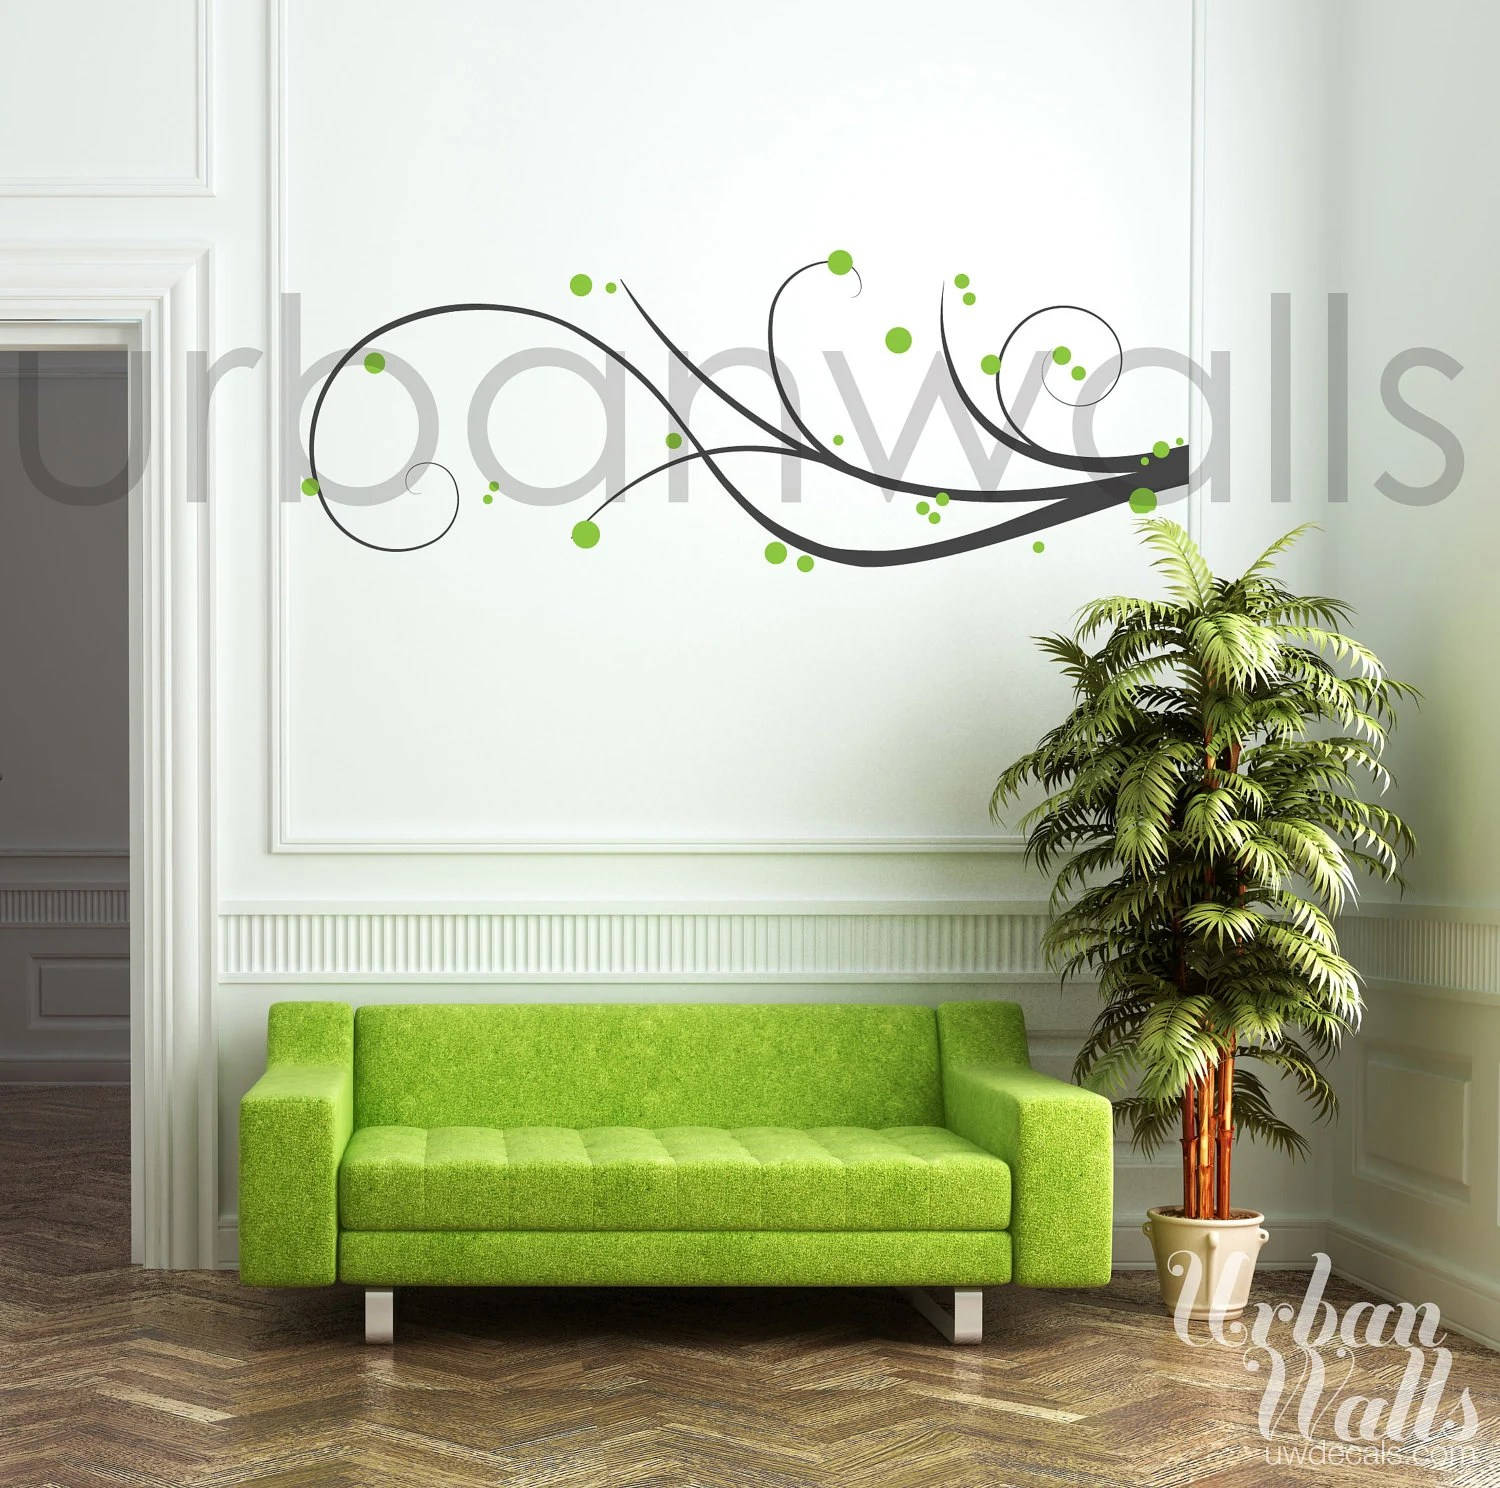 Vinyl Wall Decal Vinyl Wall Sticker Decal Art Swirl Away